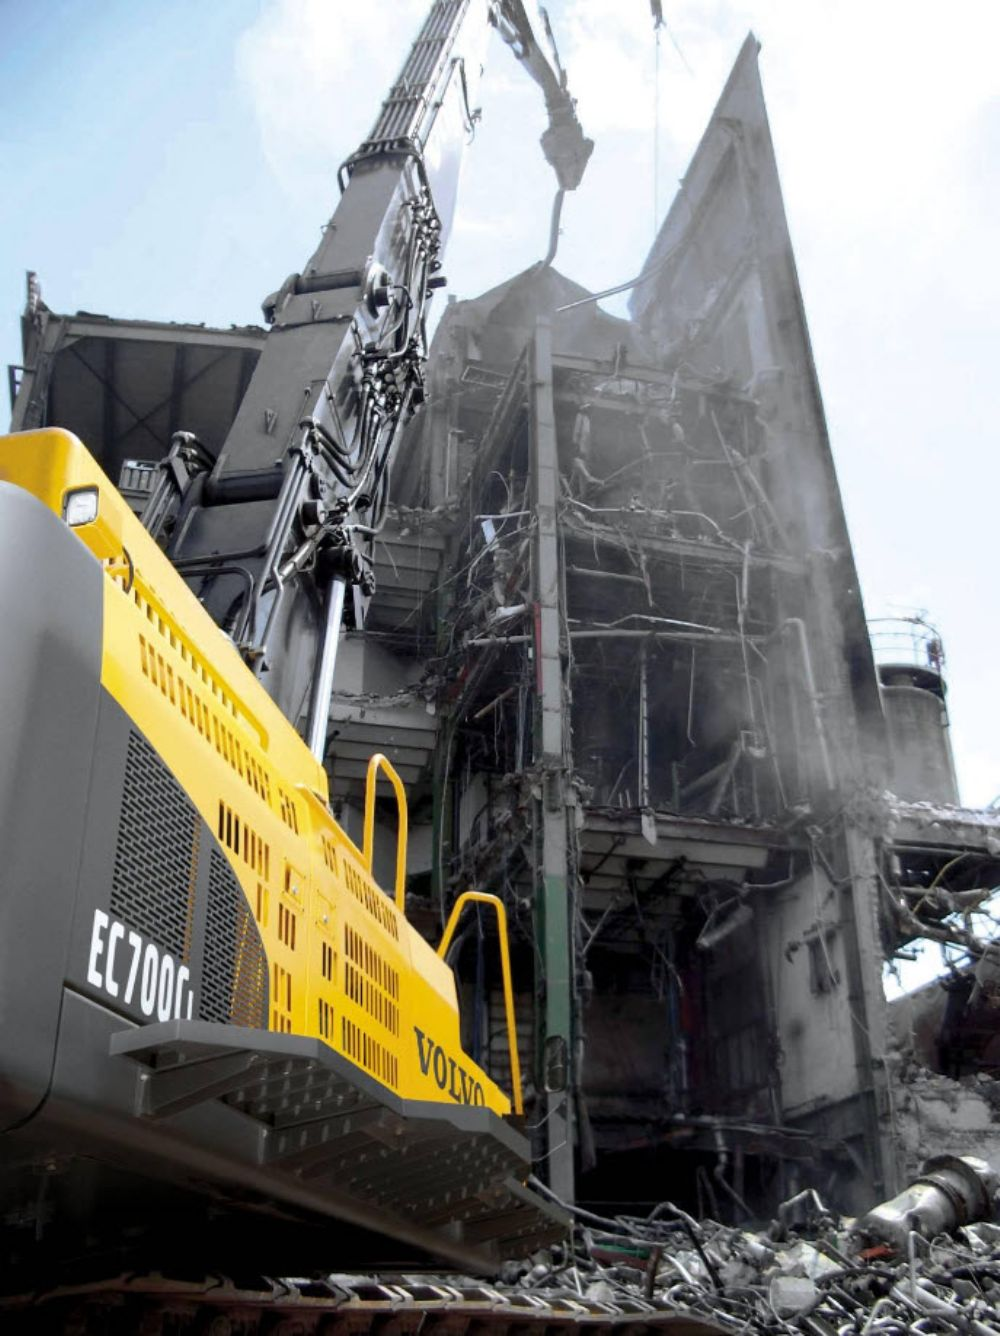 The EC700CHR offers a 105 ft. (32 m) reach, and joins the Volvo EC380DHR and EC480DHR in the high-reach line-up.